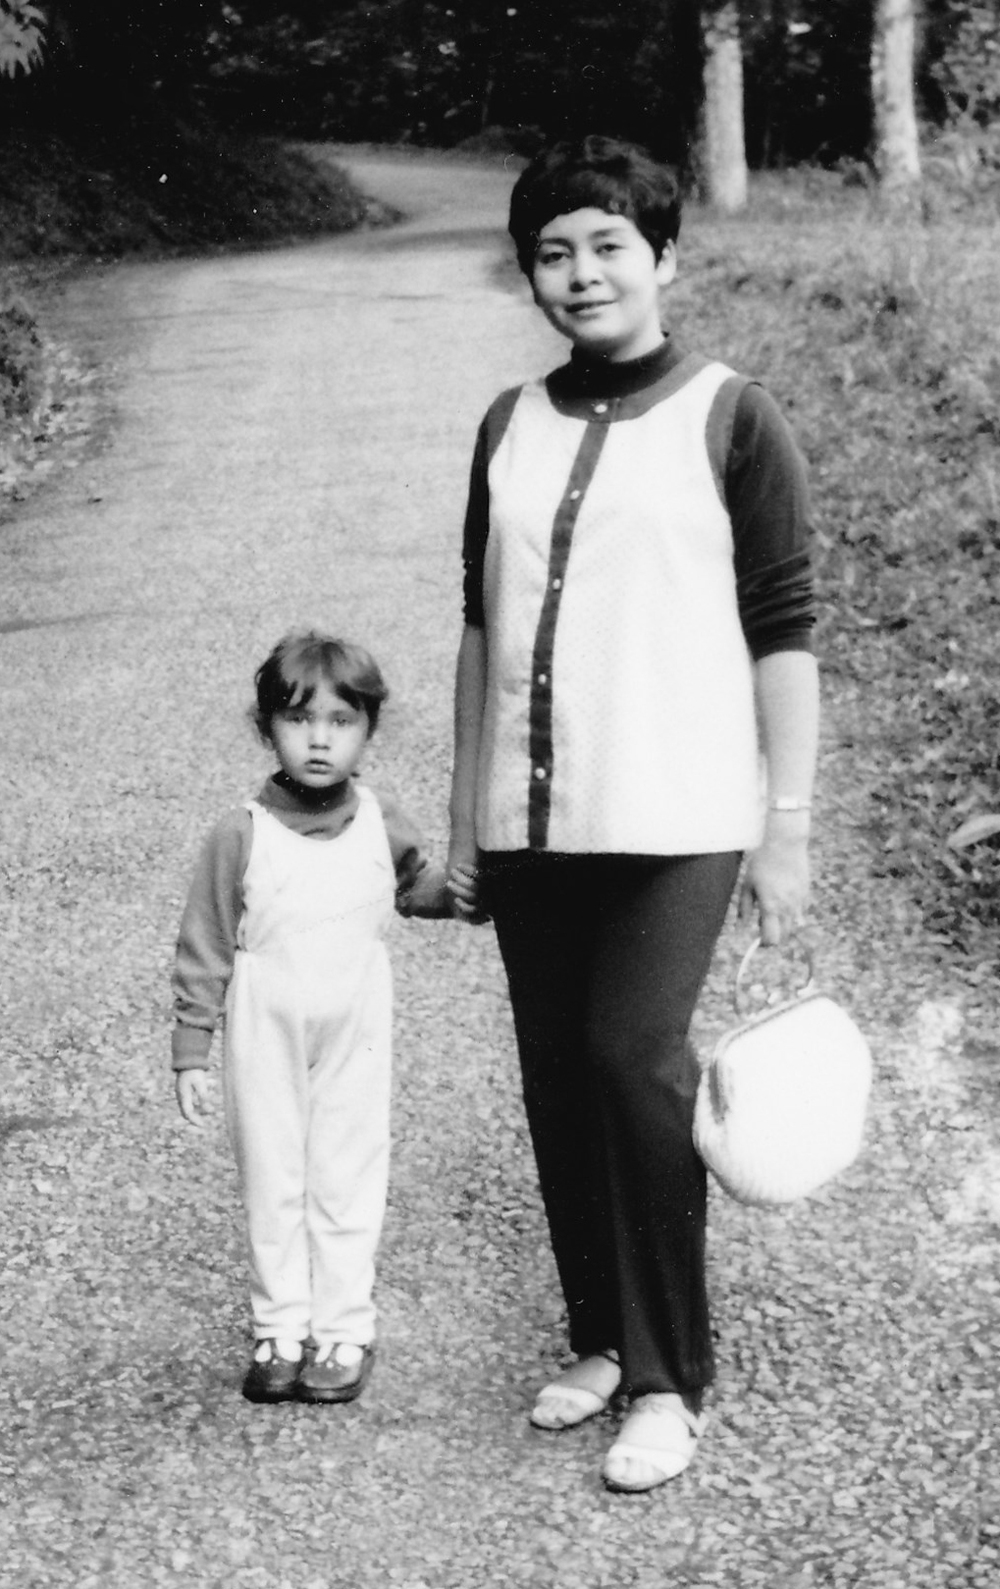 The author and her mother in Japan circa 1970